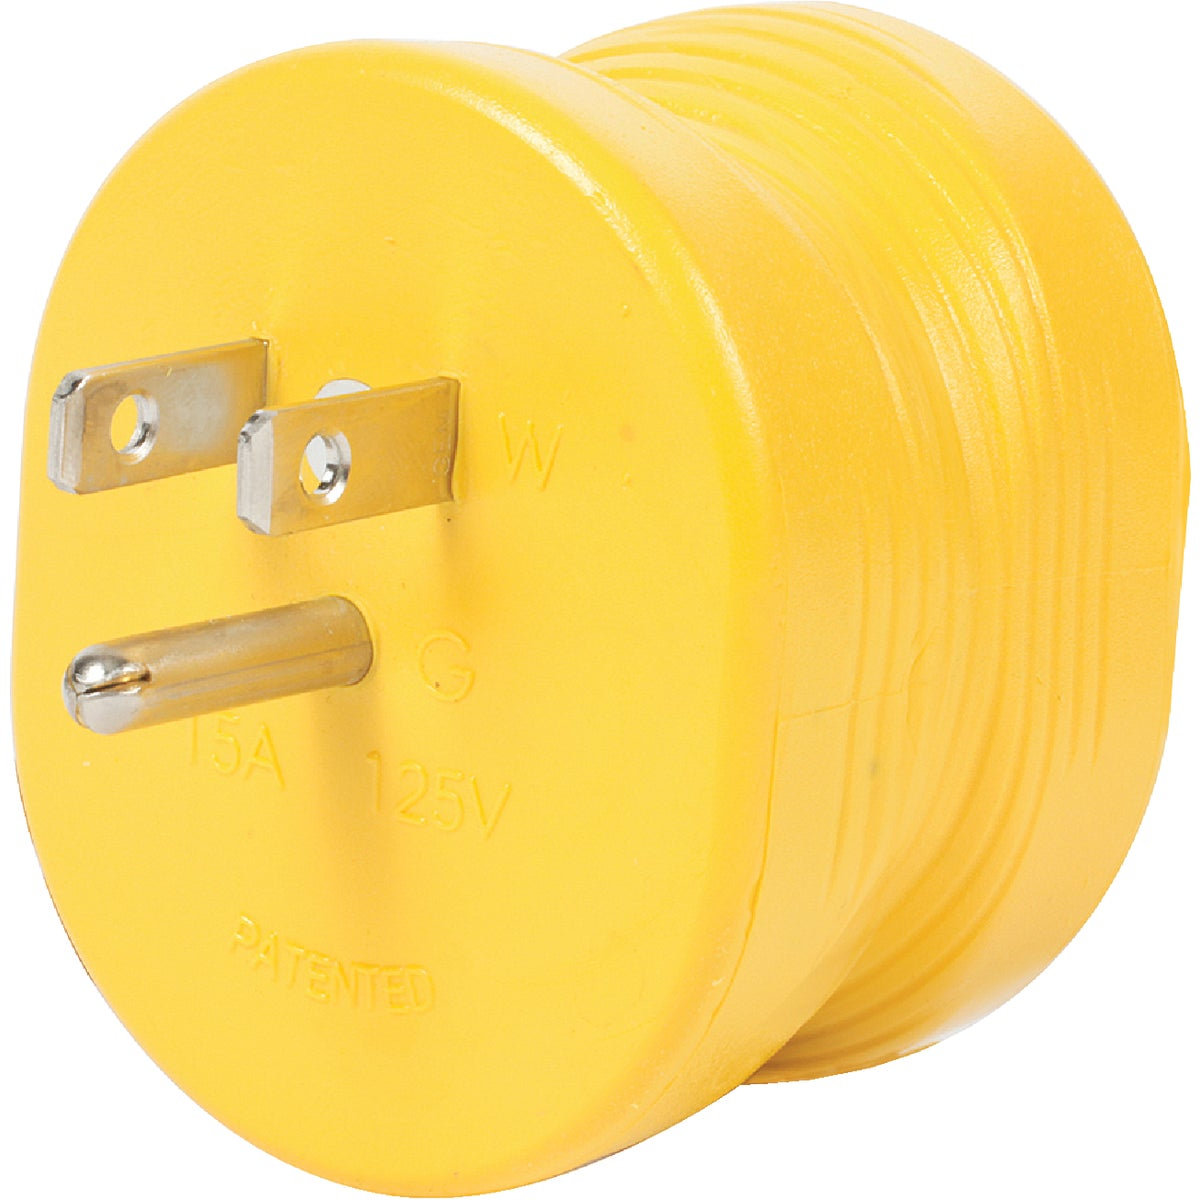 15M-30F ELECTRIC ADAPTER